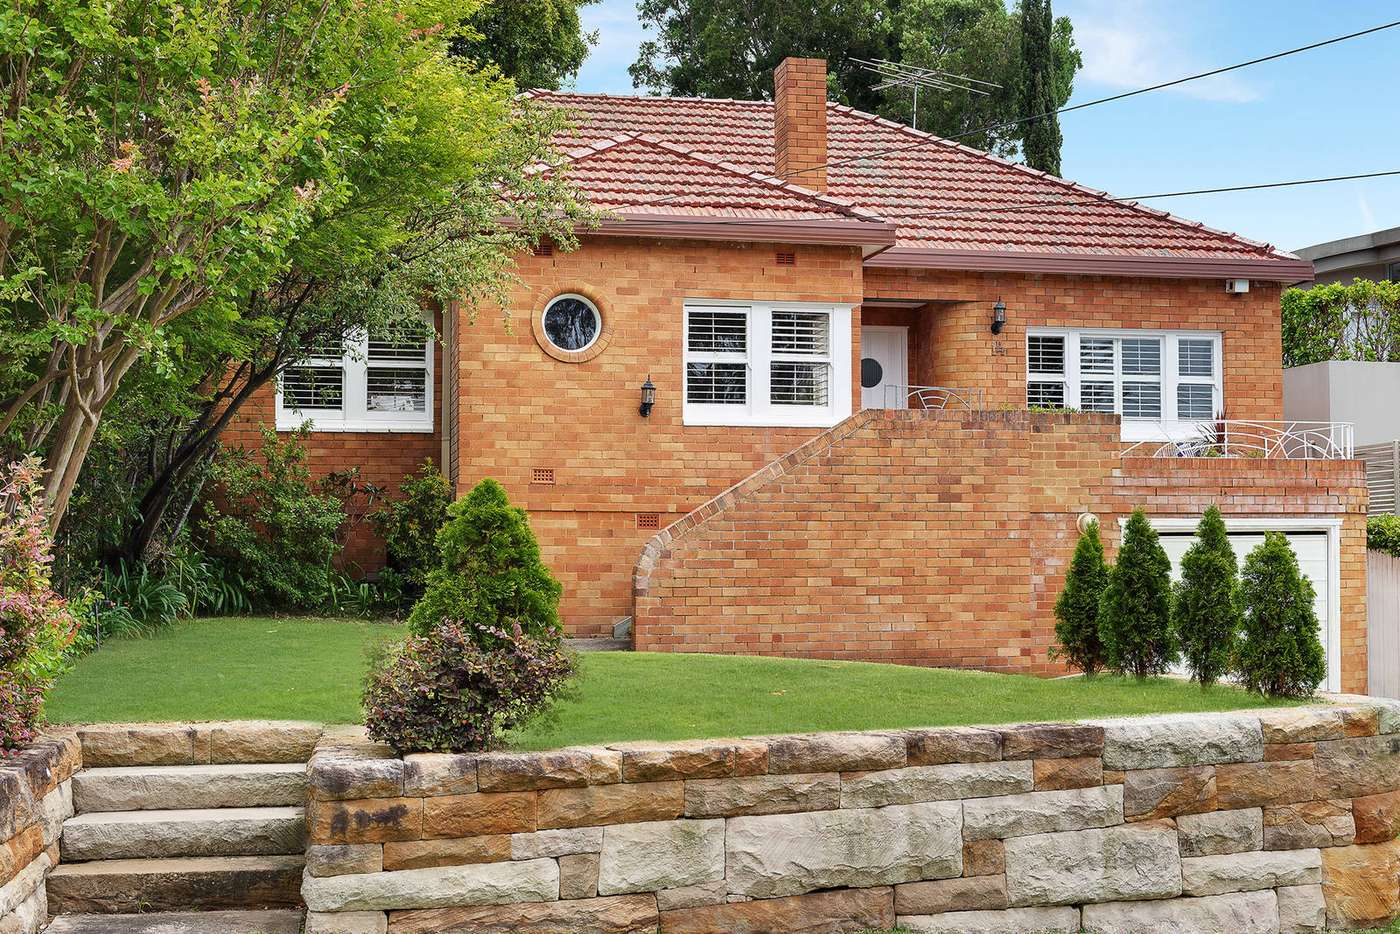 Main view of Homely house listing, 14 Charles Street, Castlecrag NSW 2068